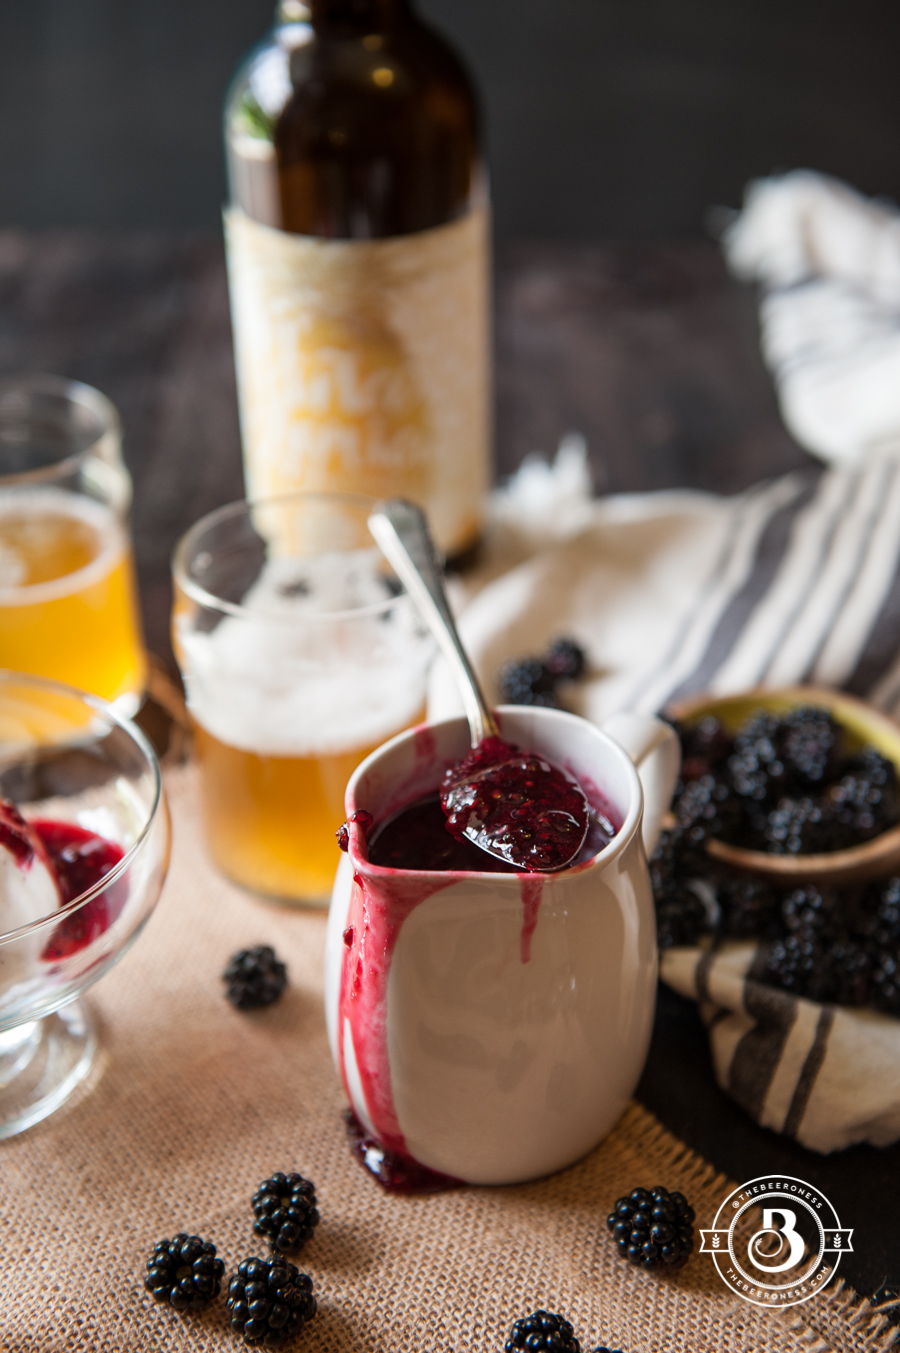 Wild Ale Blackberry Sauce